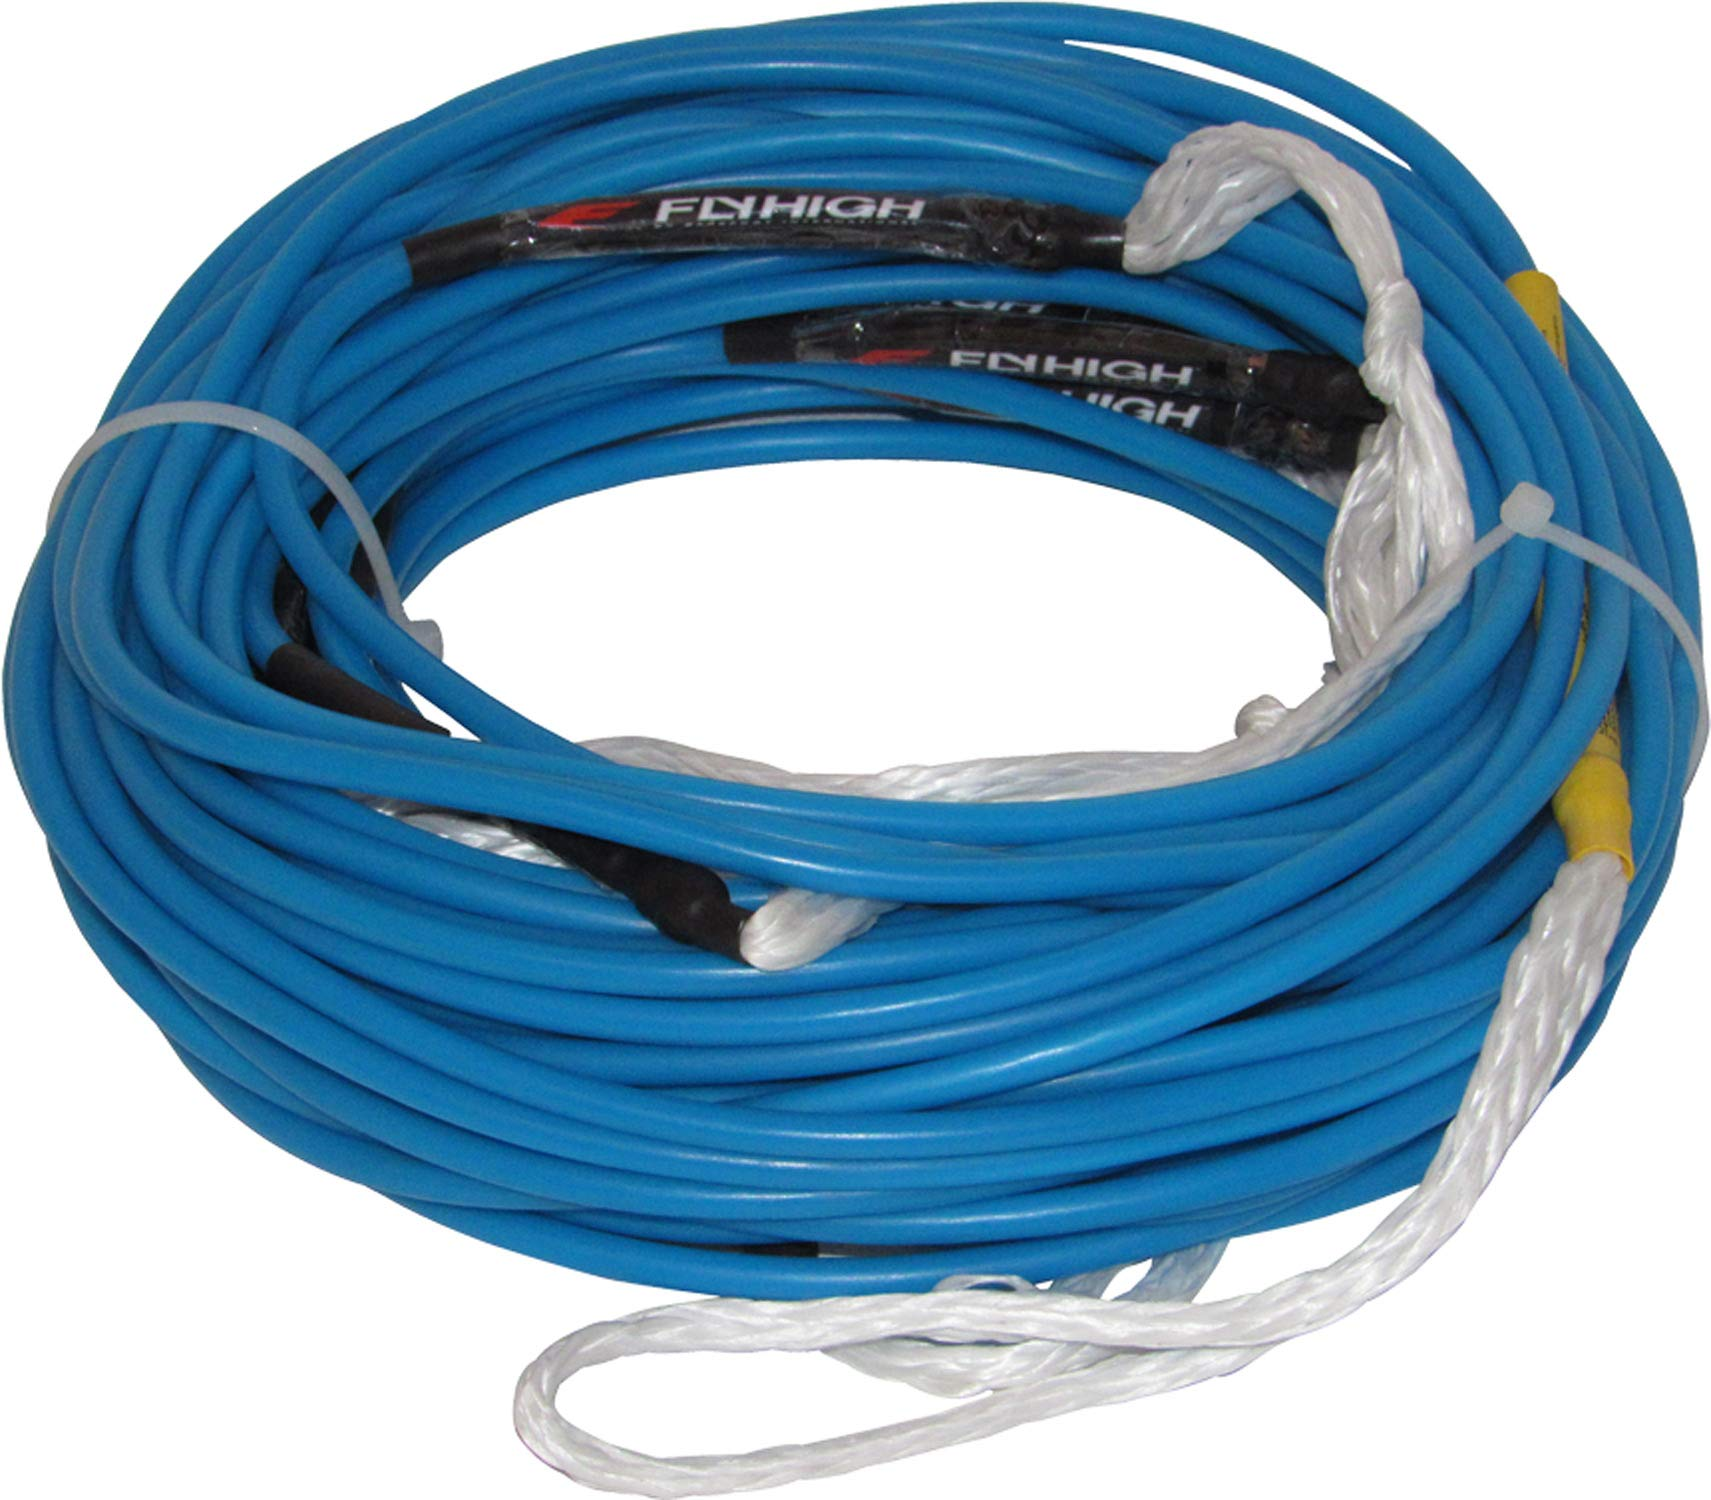 Fly High by BI Ski Rope - 95' Long Nylon Coated Spectra by Fly High